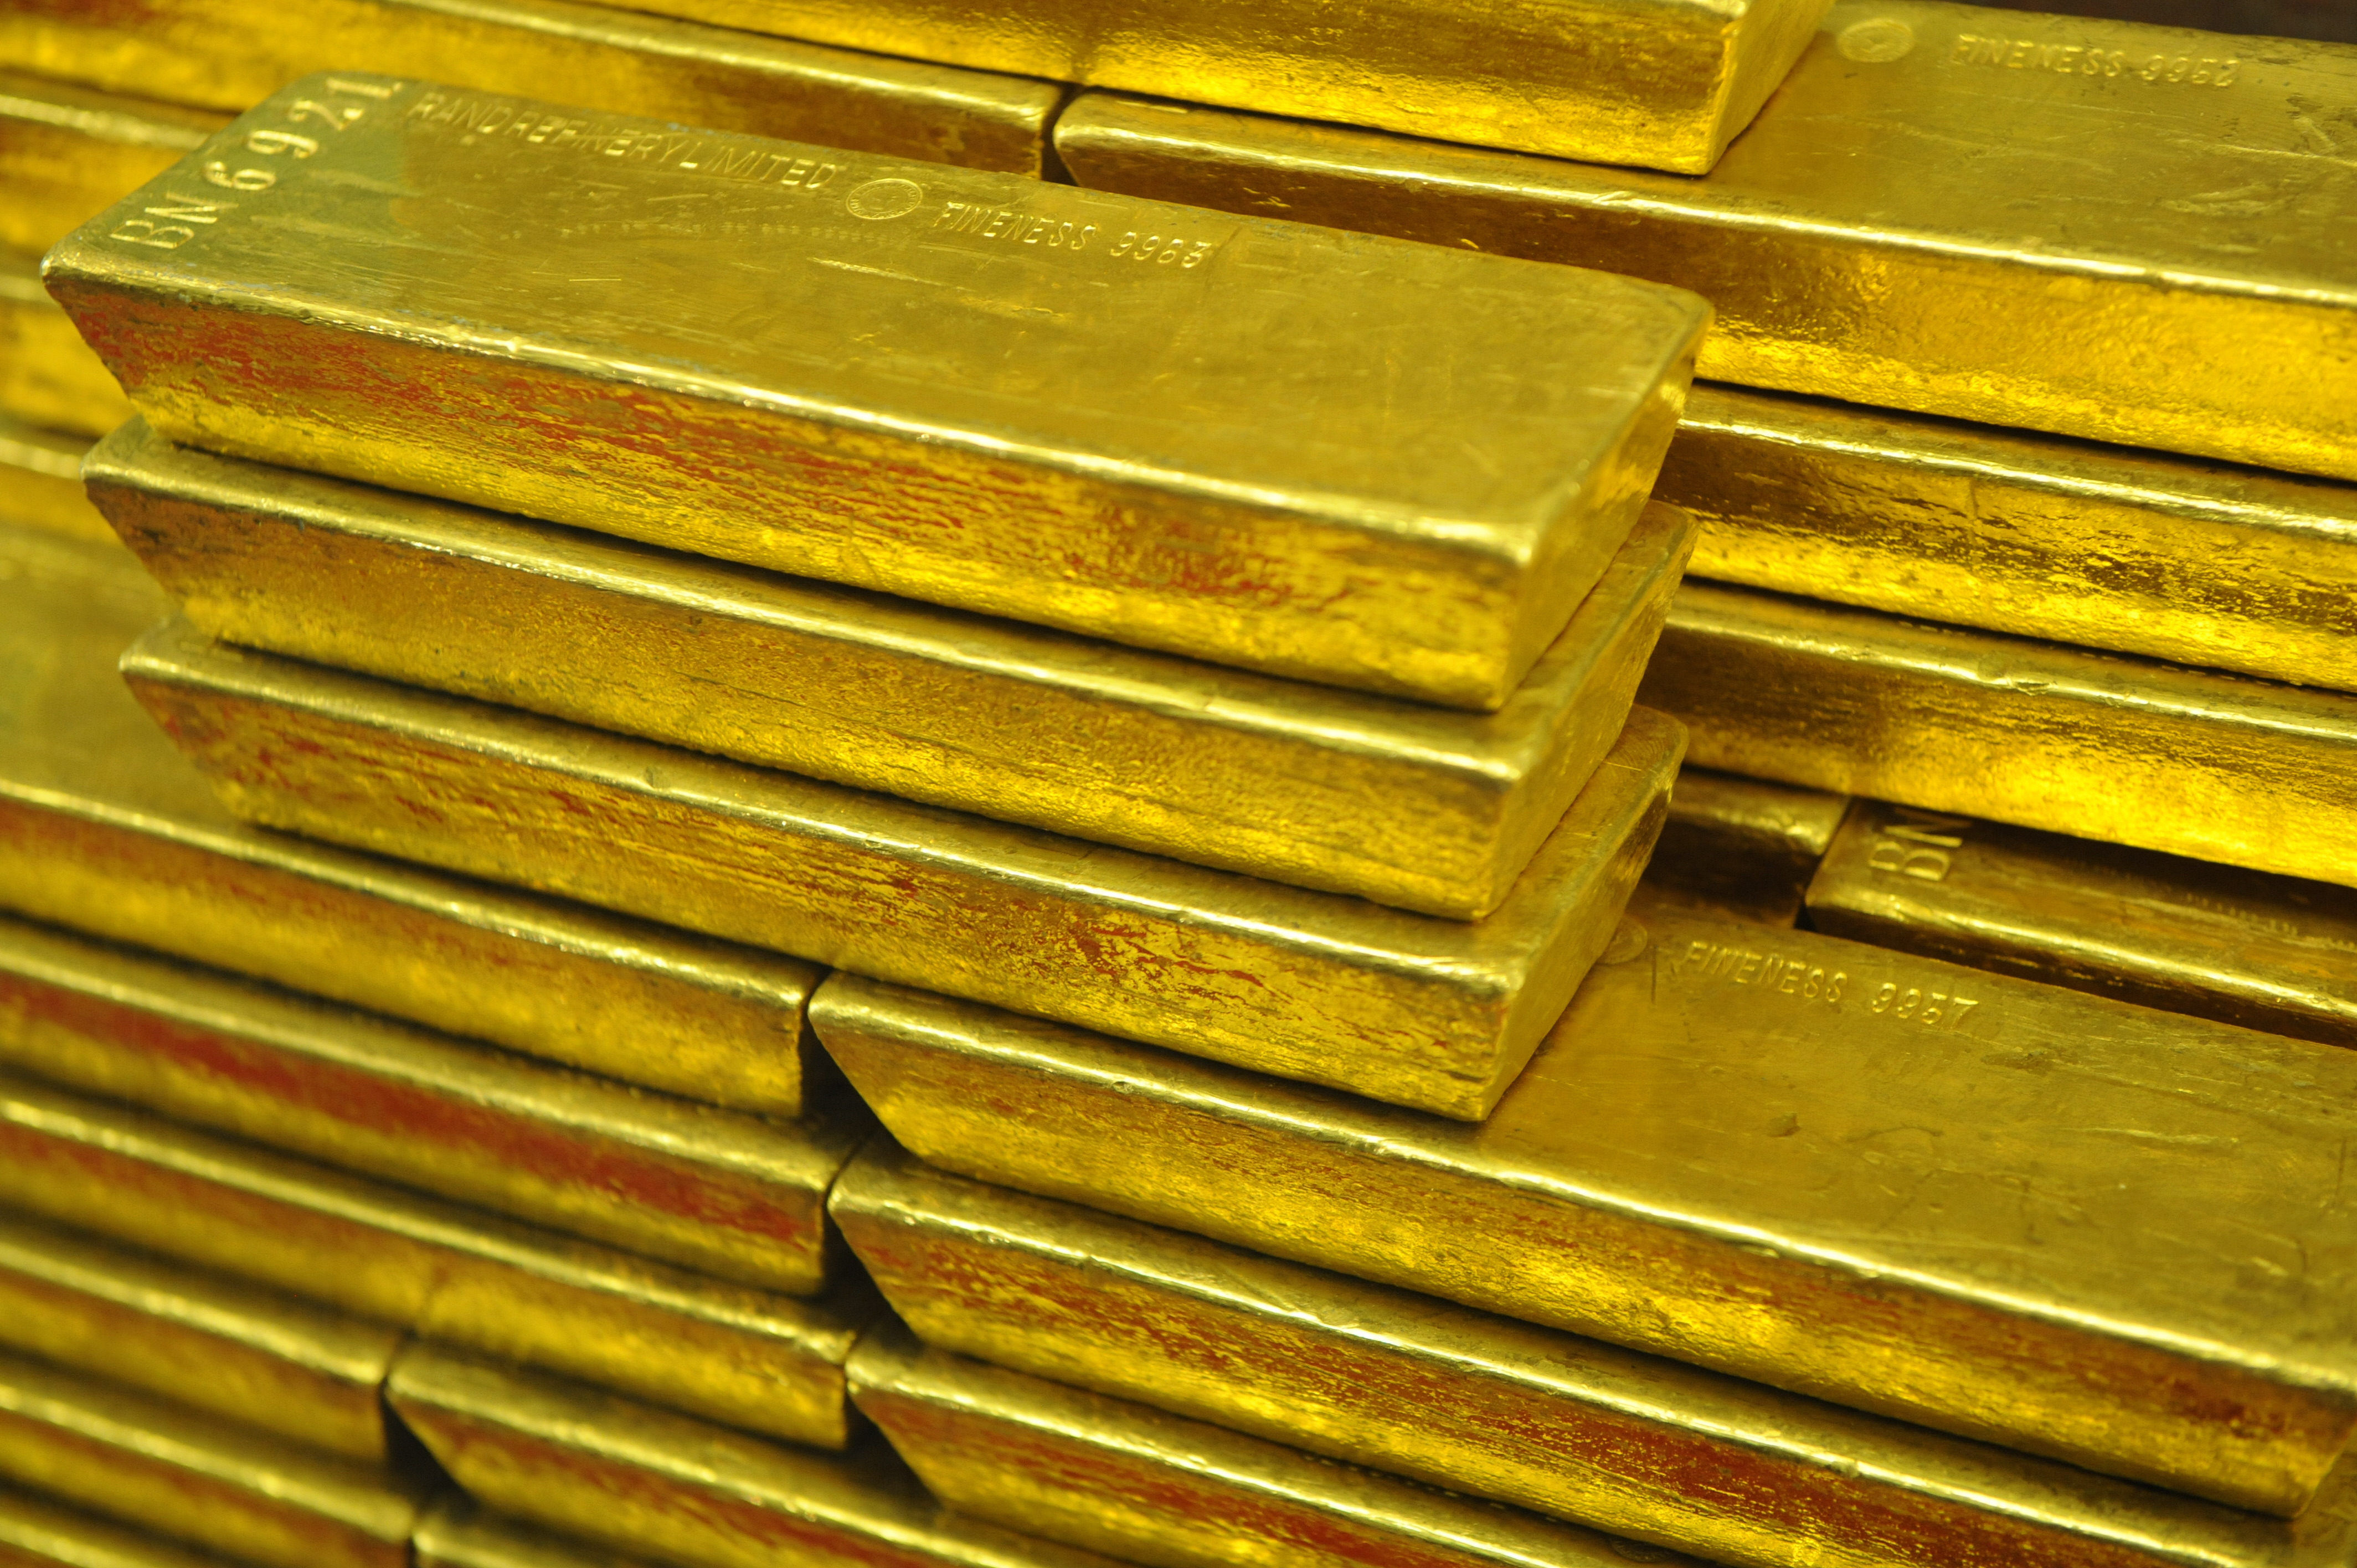 Gold bars are seen at the Czech Central